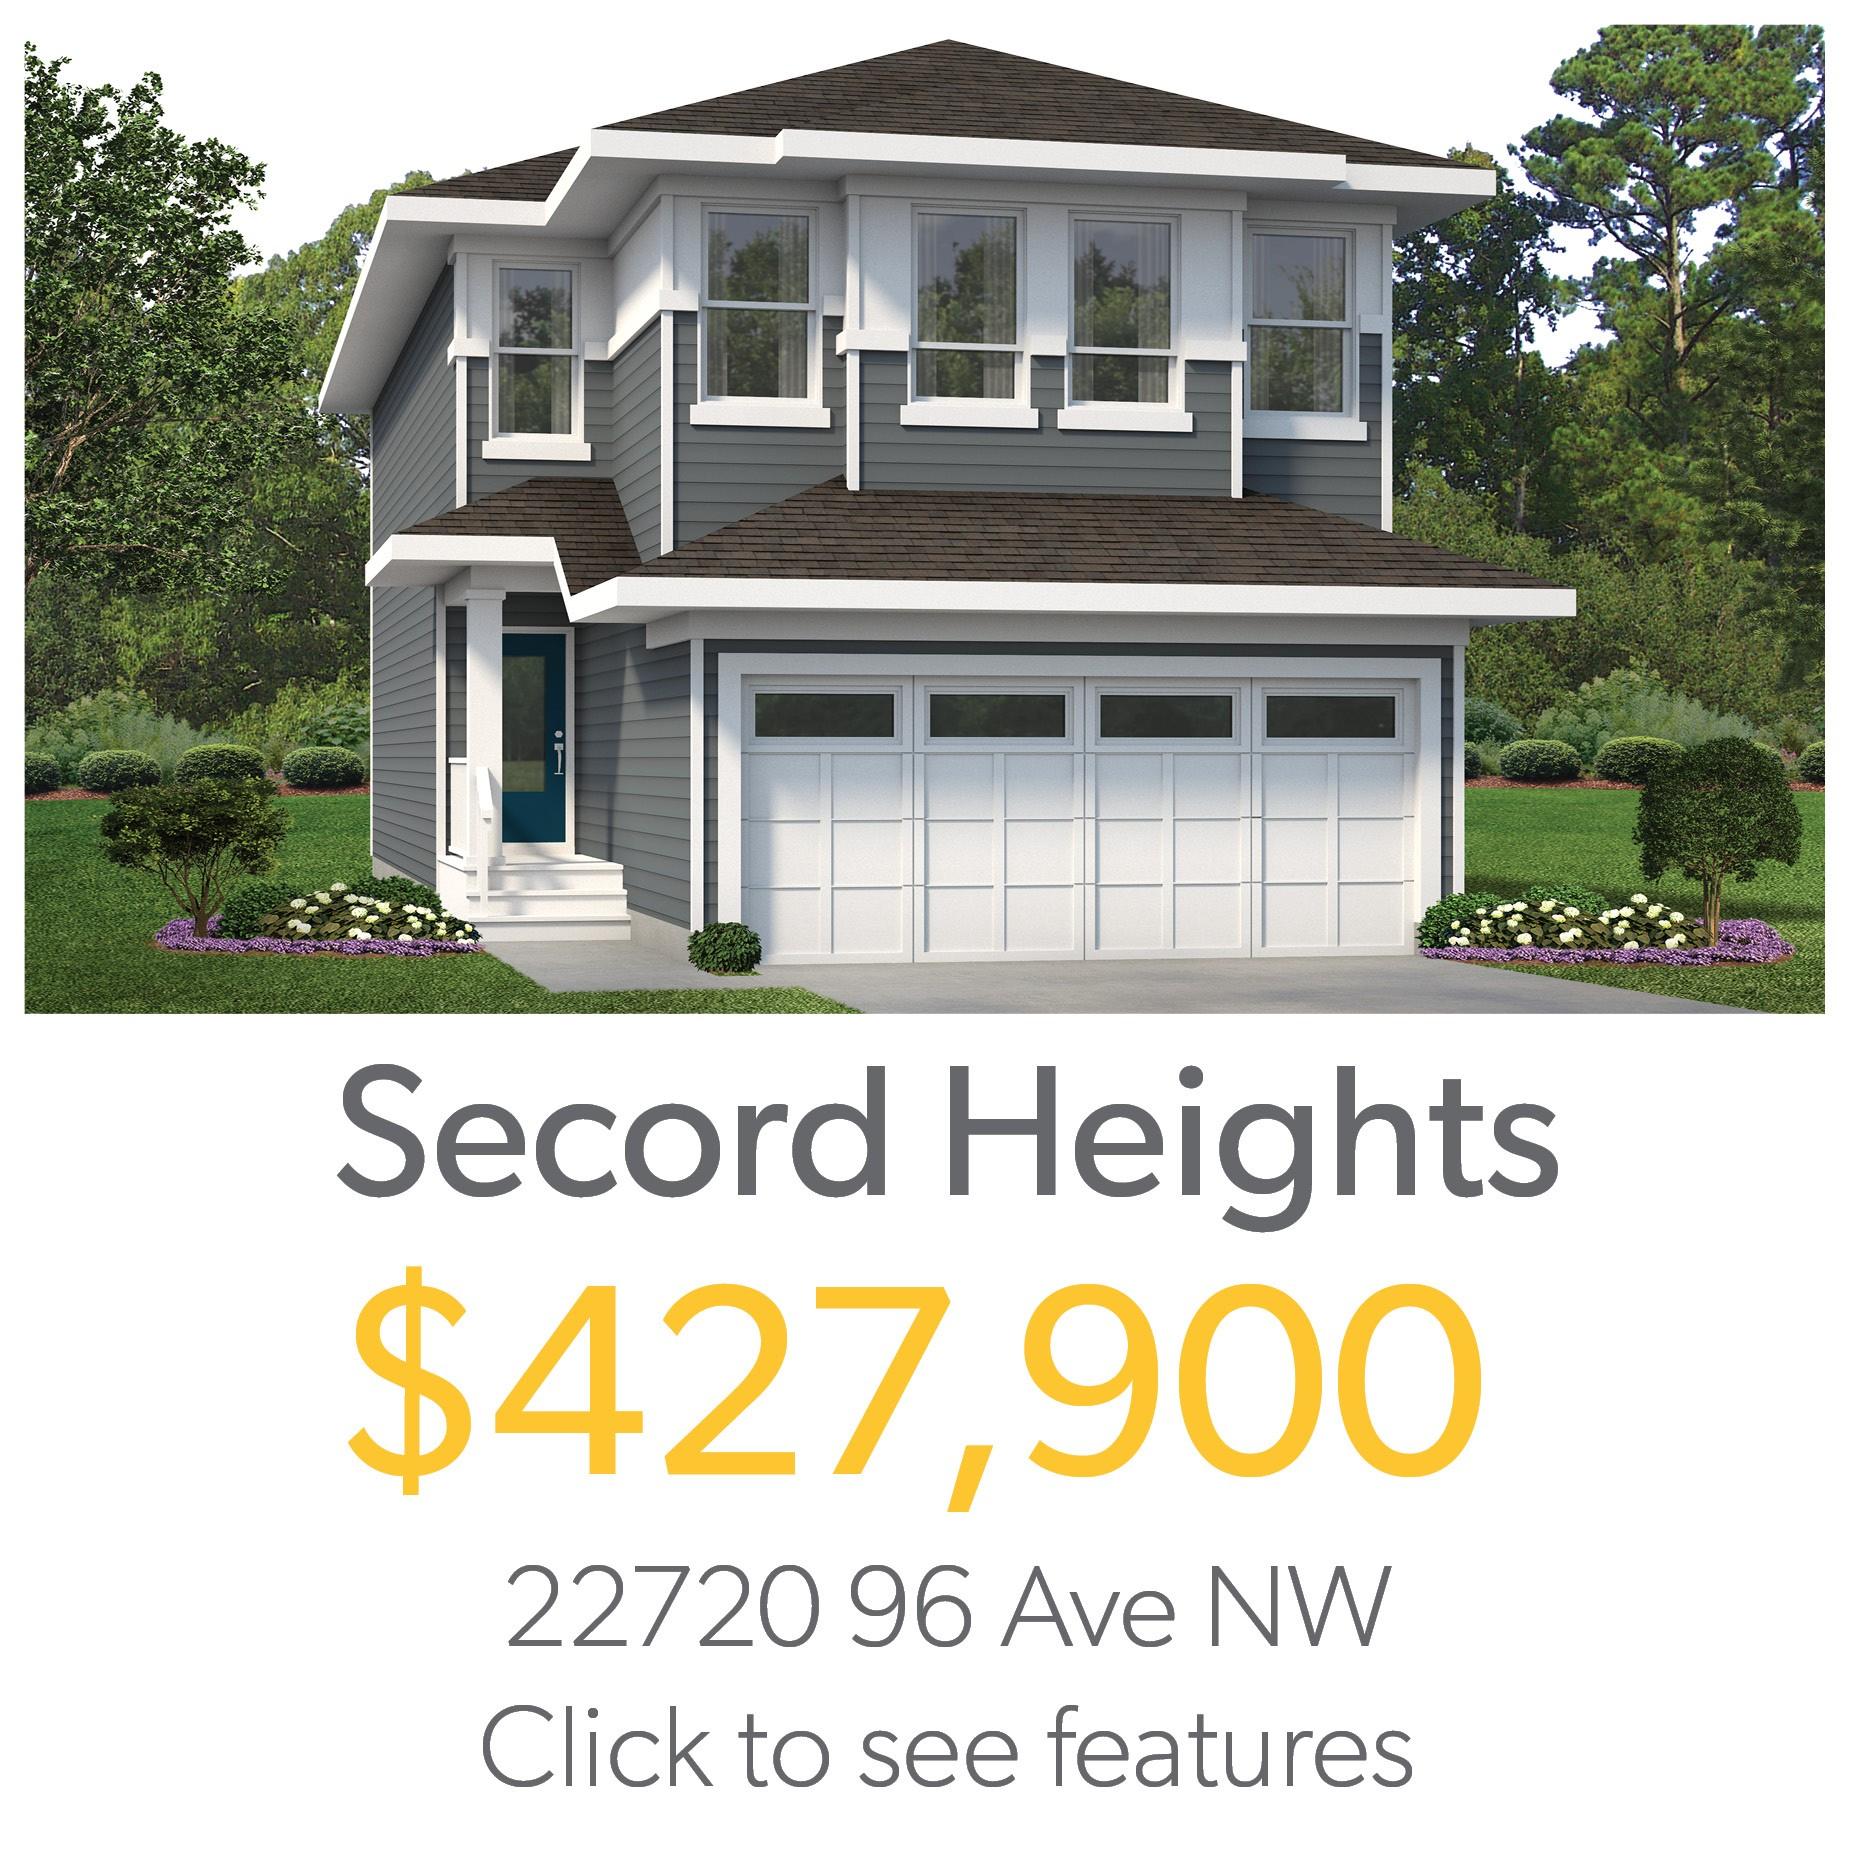 Home for sale in Secord Heights Edmonton